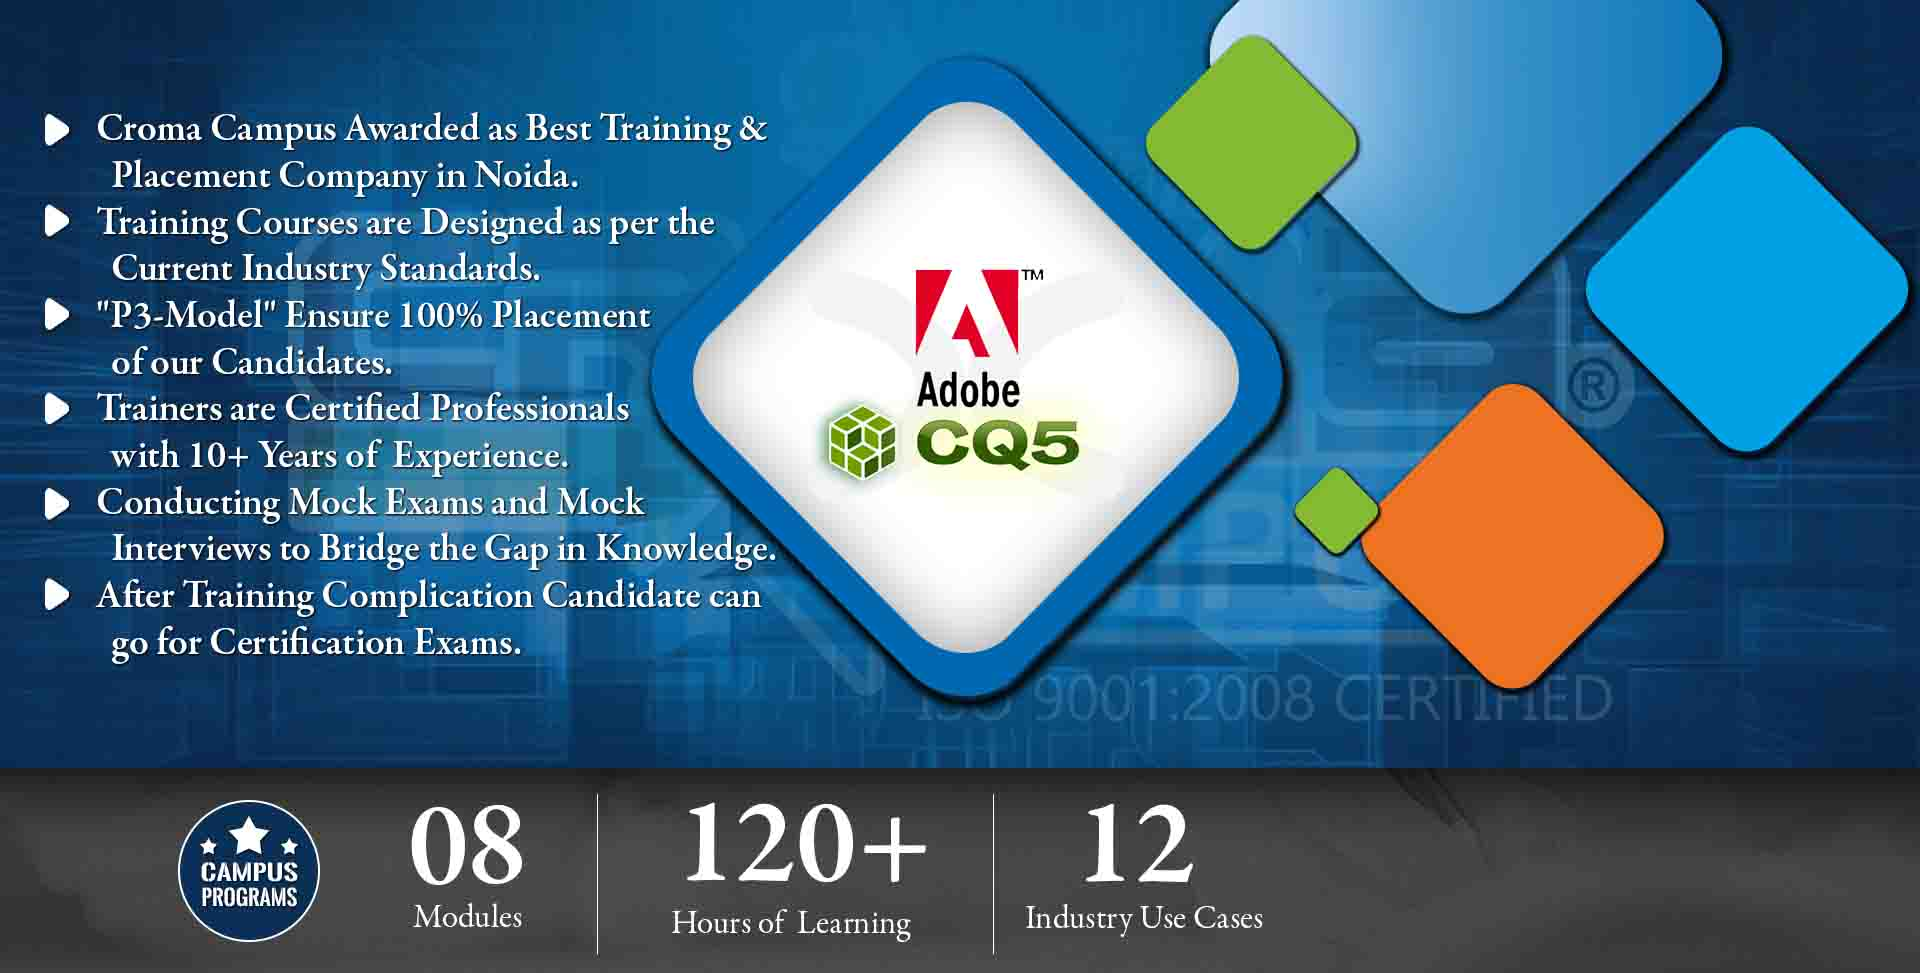 Adobe CQ5 Training in Noida- Croma Campus